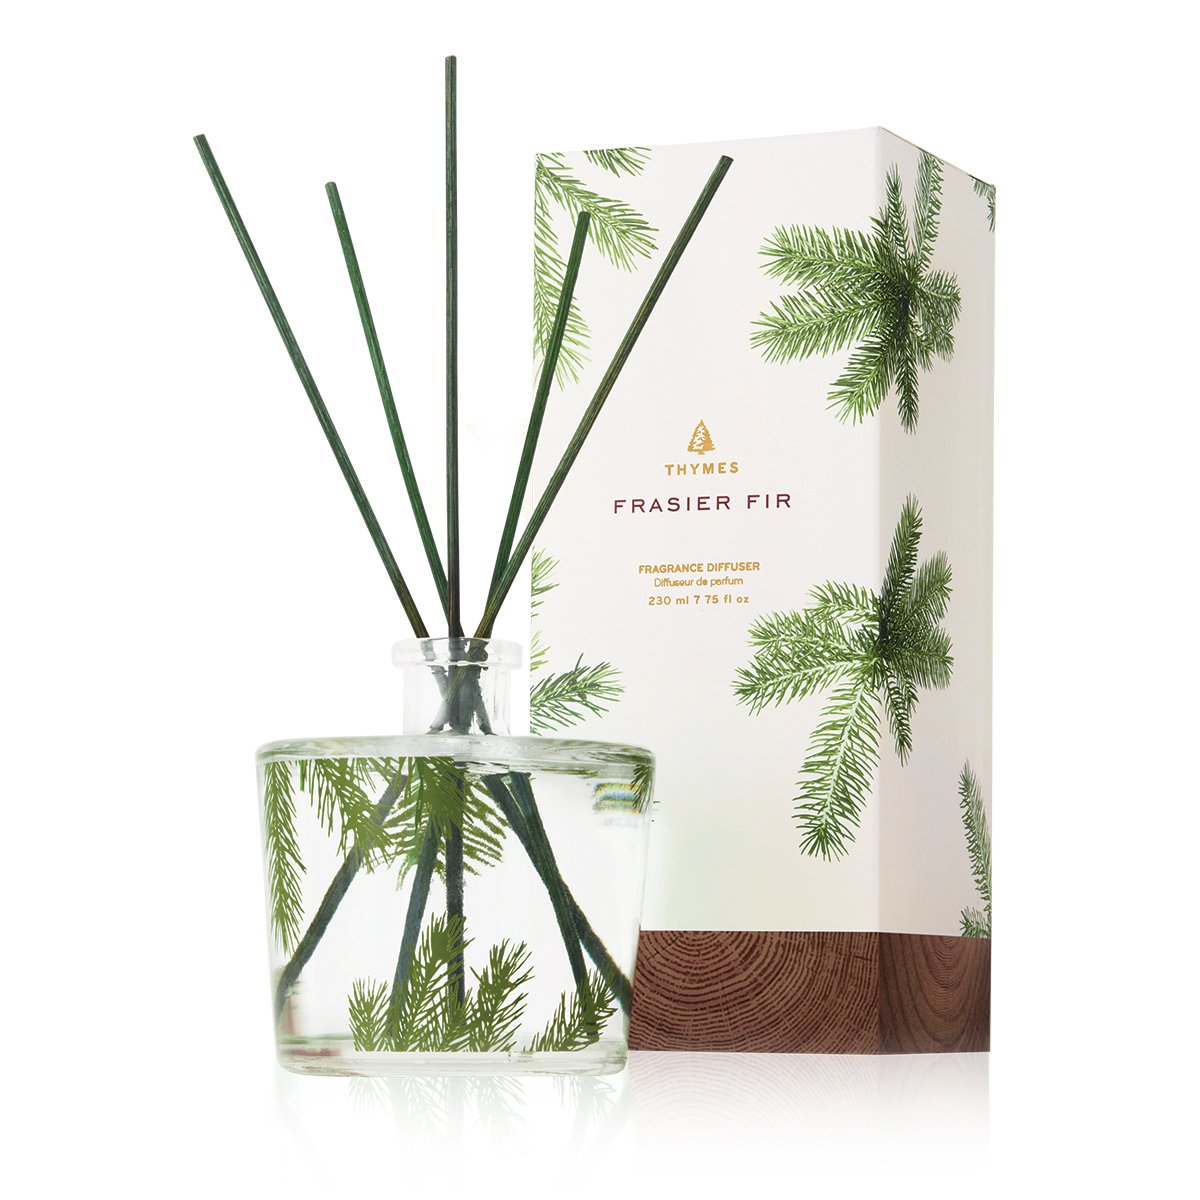 Thymes Frasier Fir Pine Needle Reed Diffuser 7.75 Ounces by Thymes